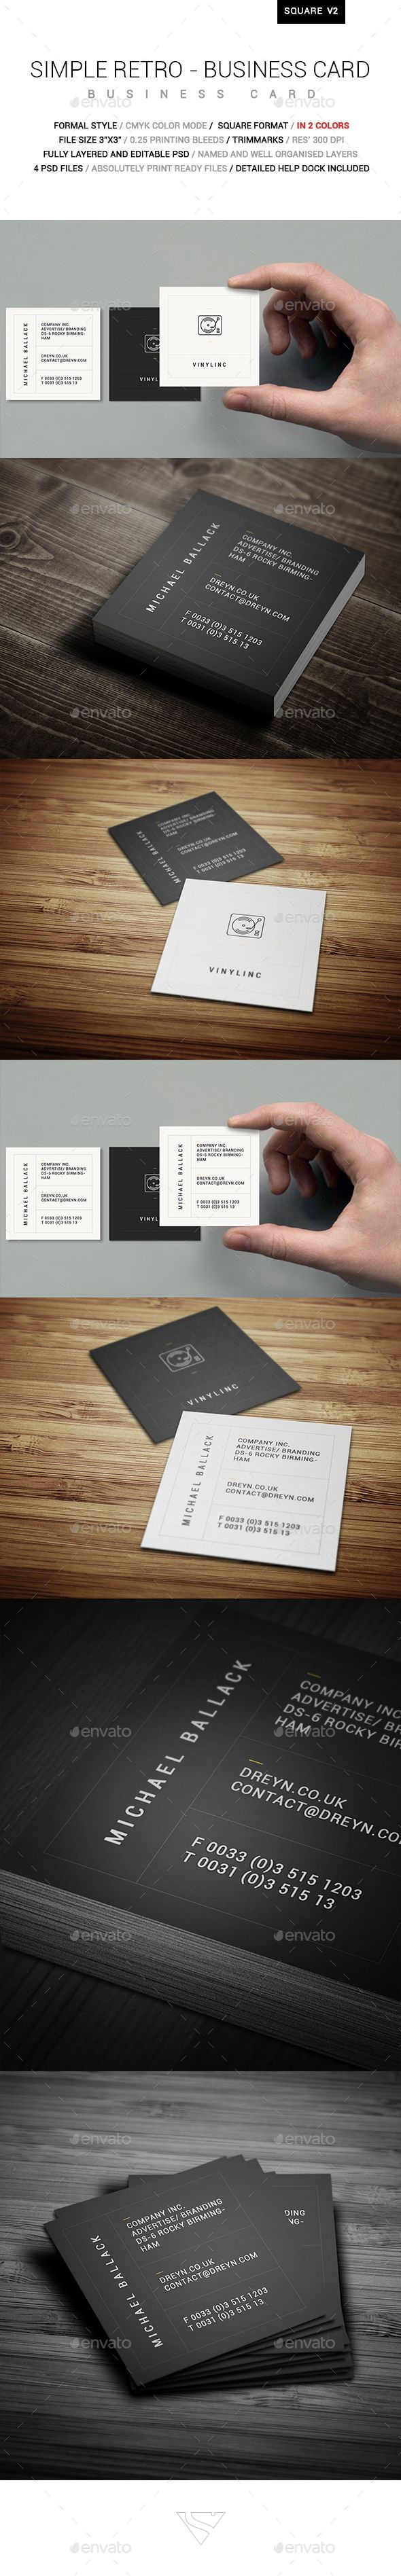 73 Best Business Cards Images On Pinterest Business Cards Carte